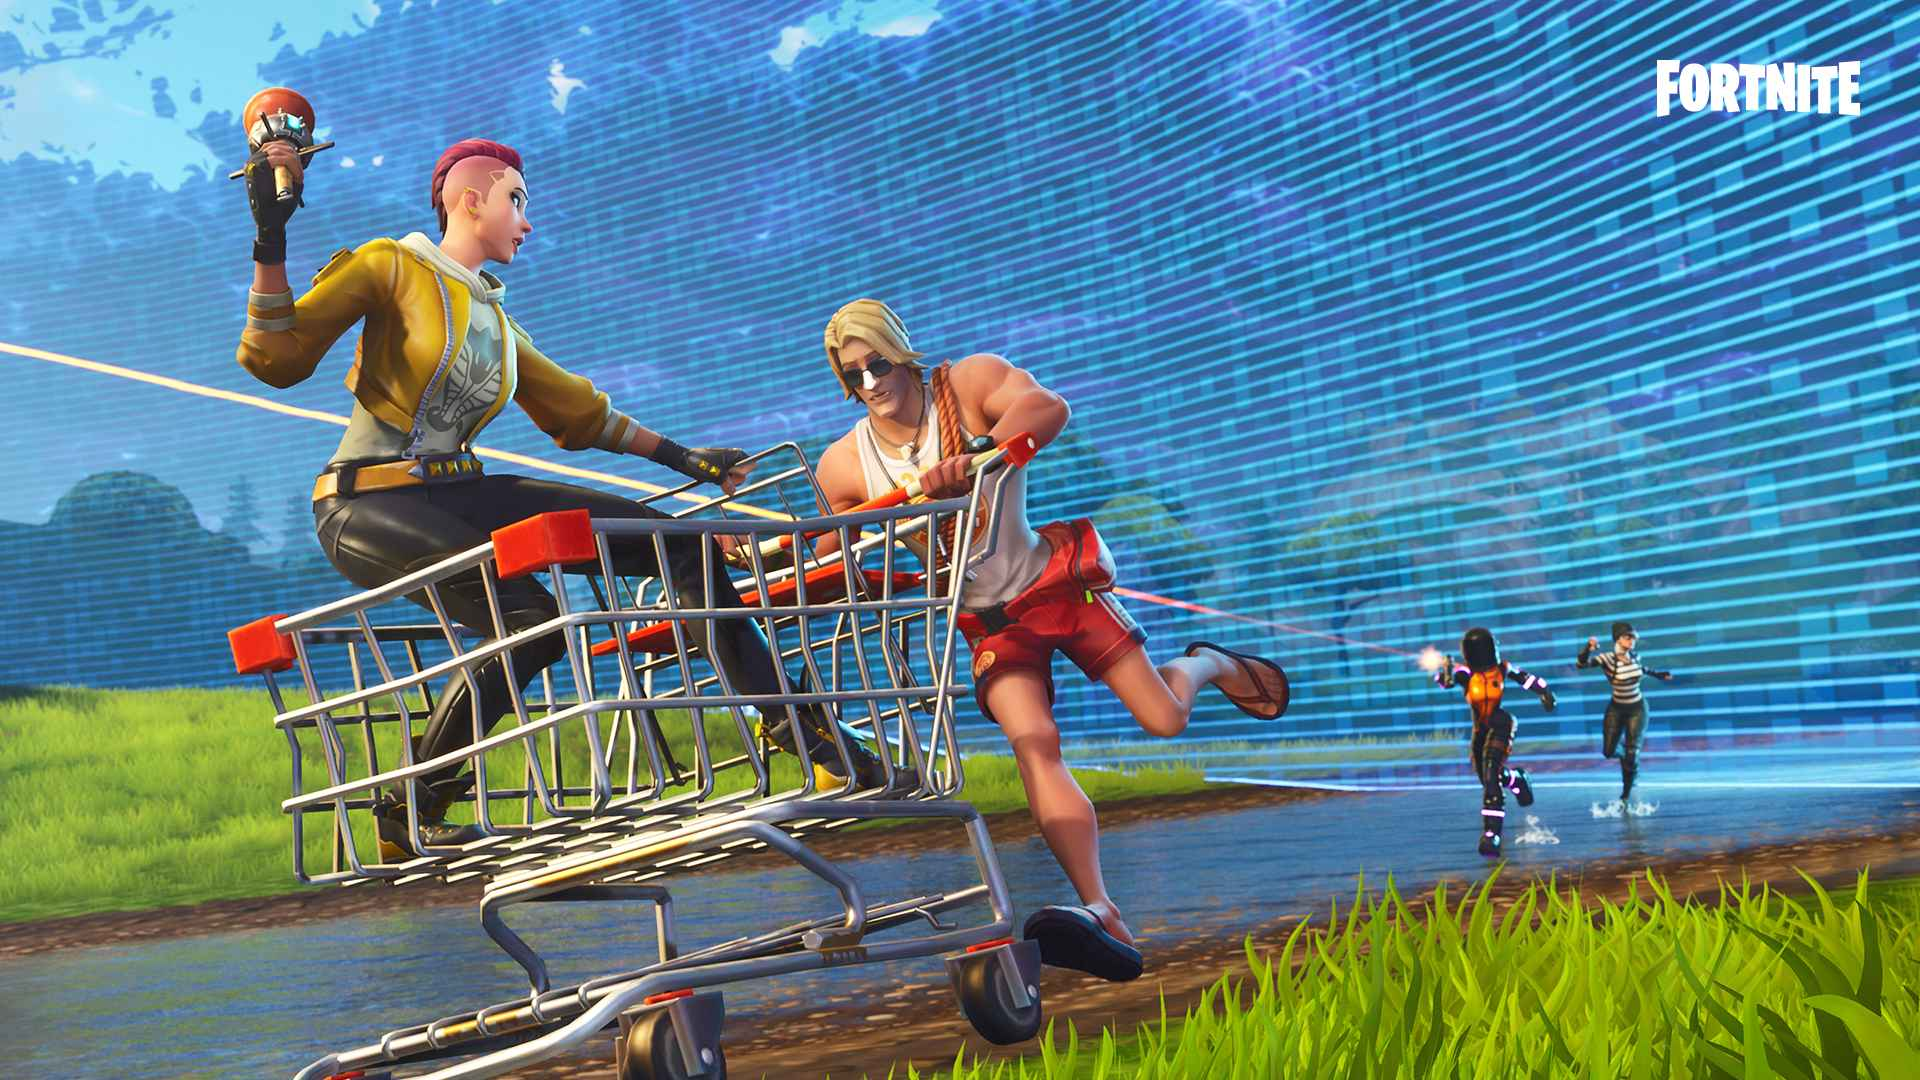 What Android Phones Are Compatible With Fortnite